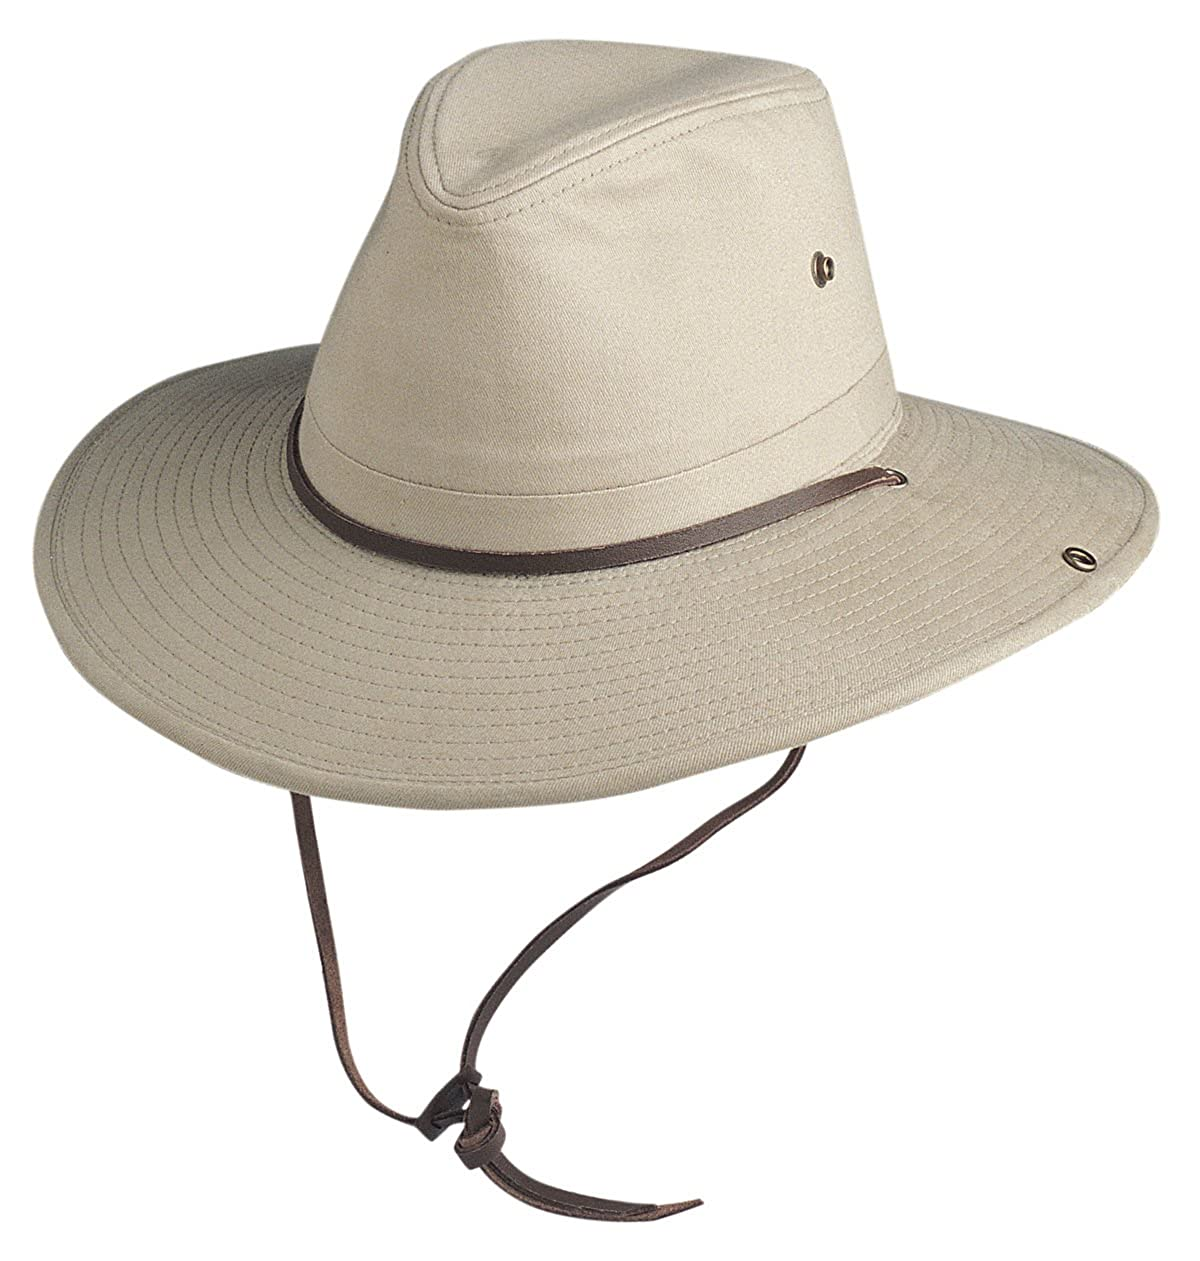 Conner Hats Men s Sahara Aussie Cotton Slouch Hat at Amazon Men s Clothing  store  97e26f8f7